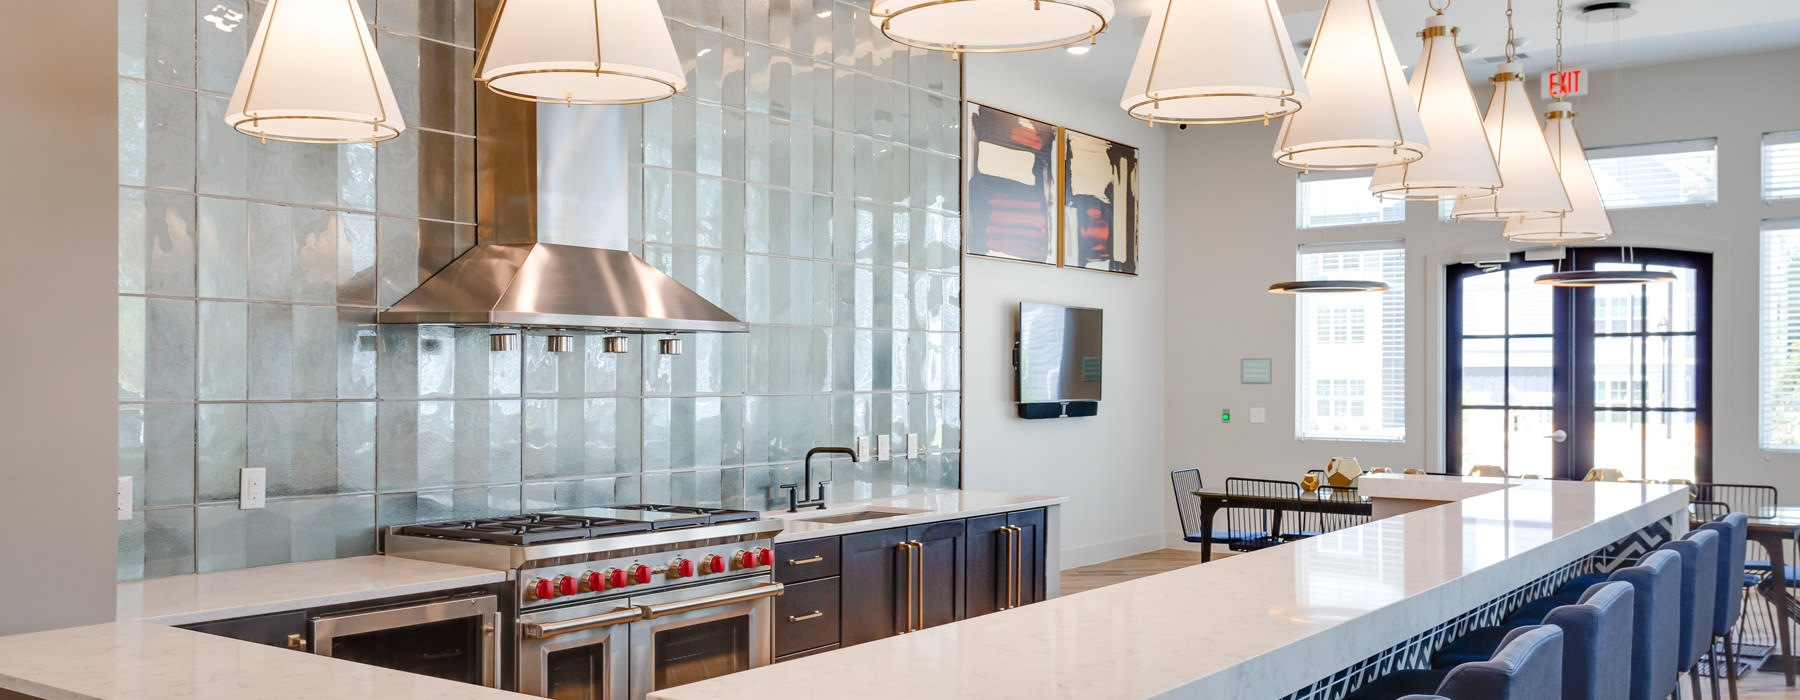 clubhouse bistro counter seating brightened by stylish pendant lighting